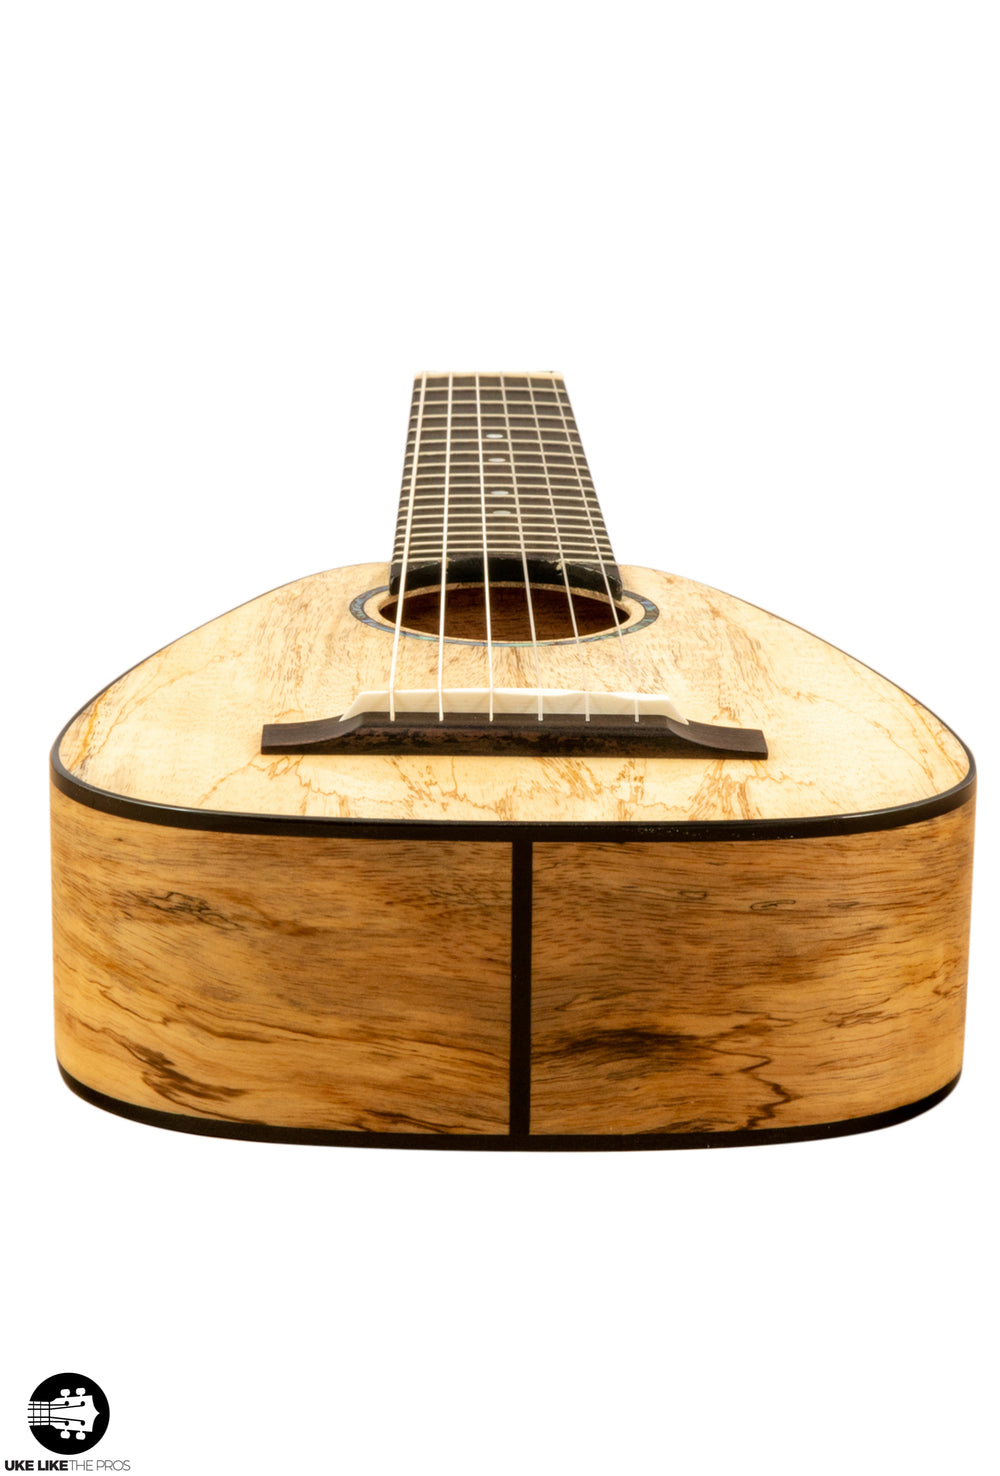 "Romero Creations 6 String Guilele Spalted Mango RC-TT6-MG ""Conrad"""